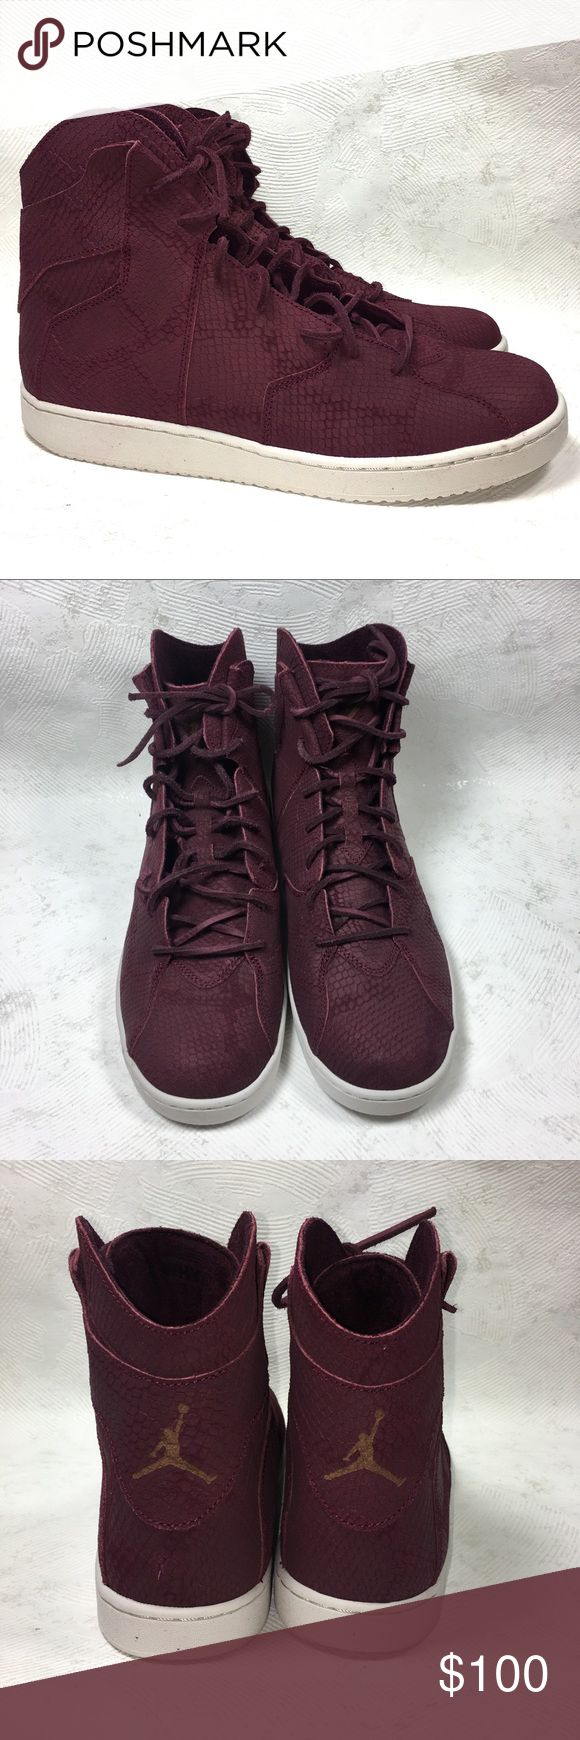 NEW Jordan Westbrook 2.0 Burgundy Suede Snakeskin Burgundy Snakeskin Suede Nike Jordan Westbrook 2.0 comes with standard & suede laces  ⁃Size: 11  ⁃Condition: Brand new with no flaws. Does not come with original box  ⁃Material Makeup: Suede  📦📫Same to Next Day Shipping! ✖️Don't like the Price? Make an Offer!  ❓Have a Question? Ask!  🍁Bundle & Save! Add item(s) to a bundle for a private offer! 🍁 Jordan Shoes Athletic Shoes